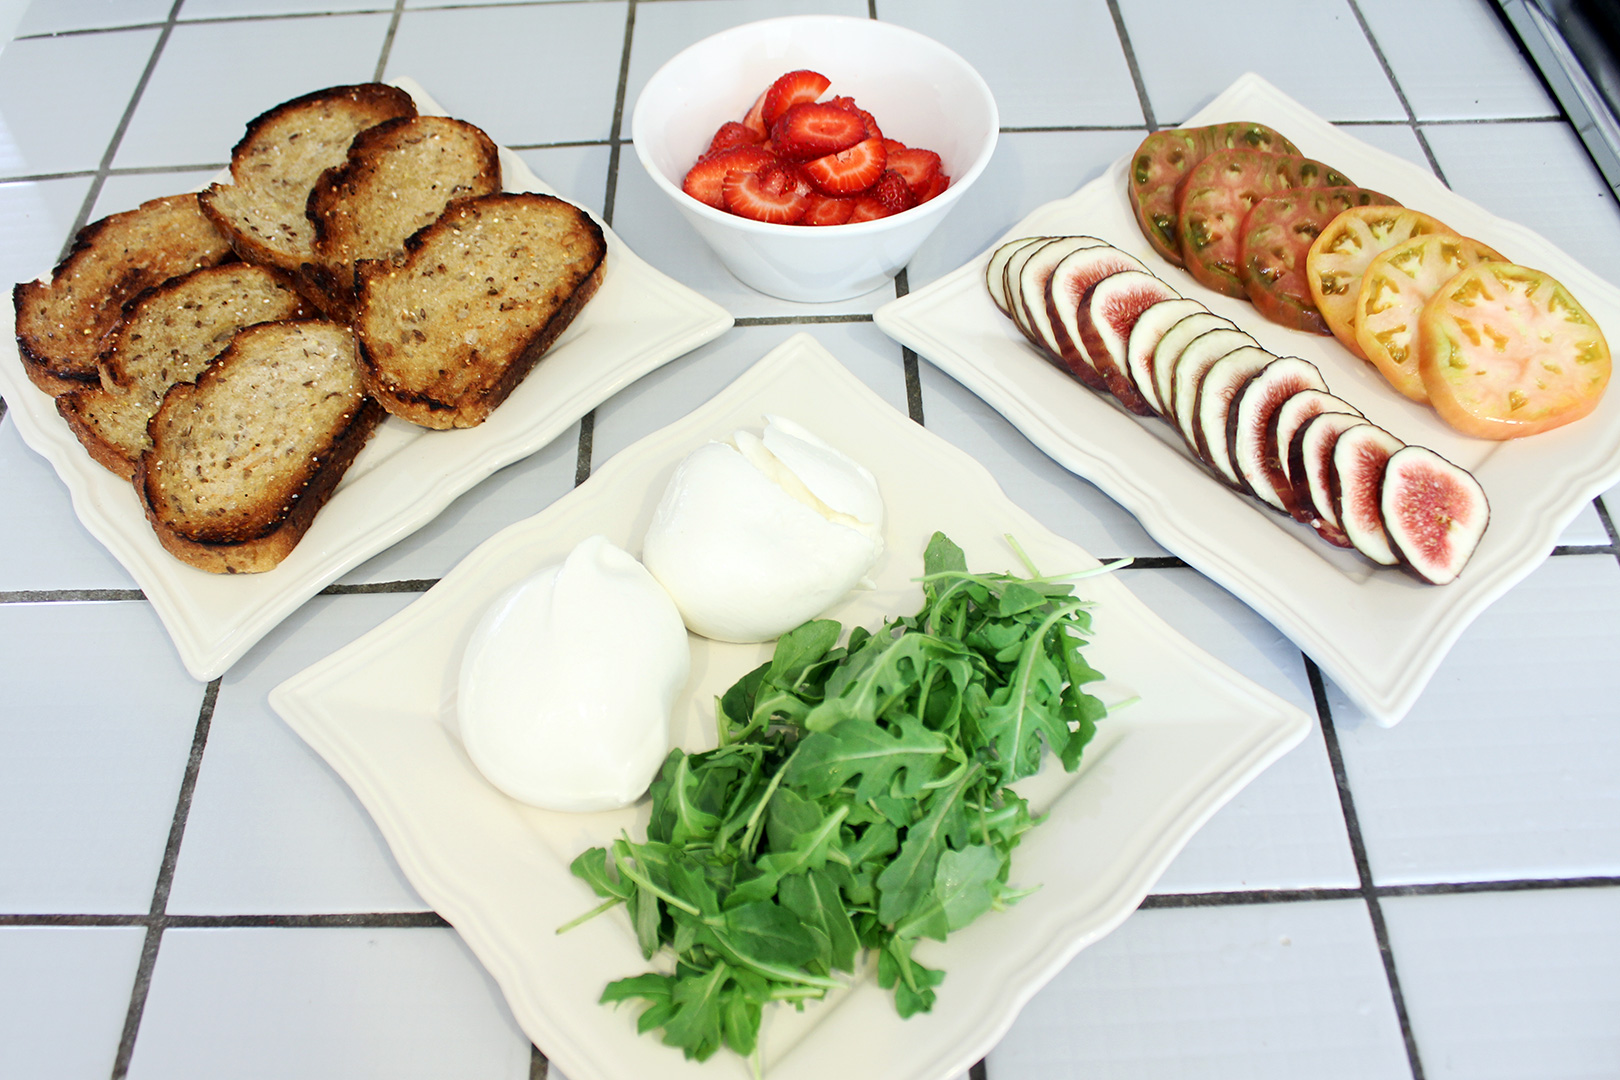 Burrata Toast ingredients and toppings spread out for easy assembly.